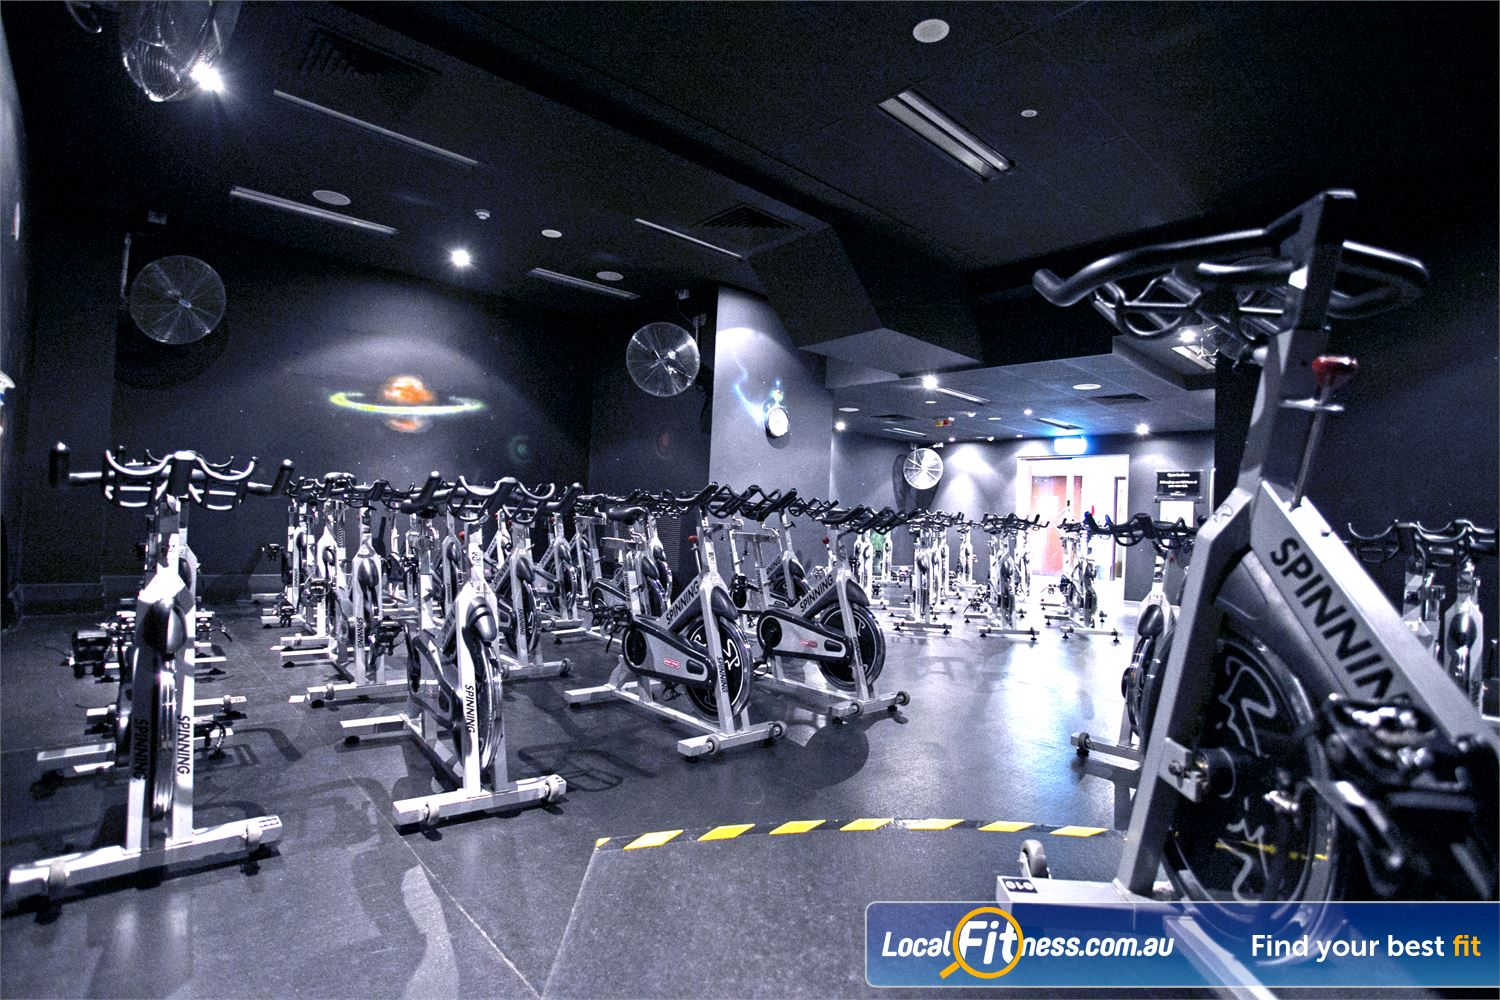 Goodlife Health Clubs Adelaide City Adelaide Burn calories fast with Adelaide spin cycle classes.